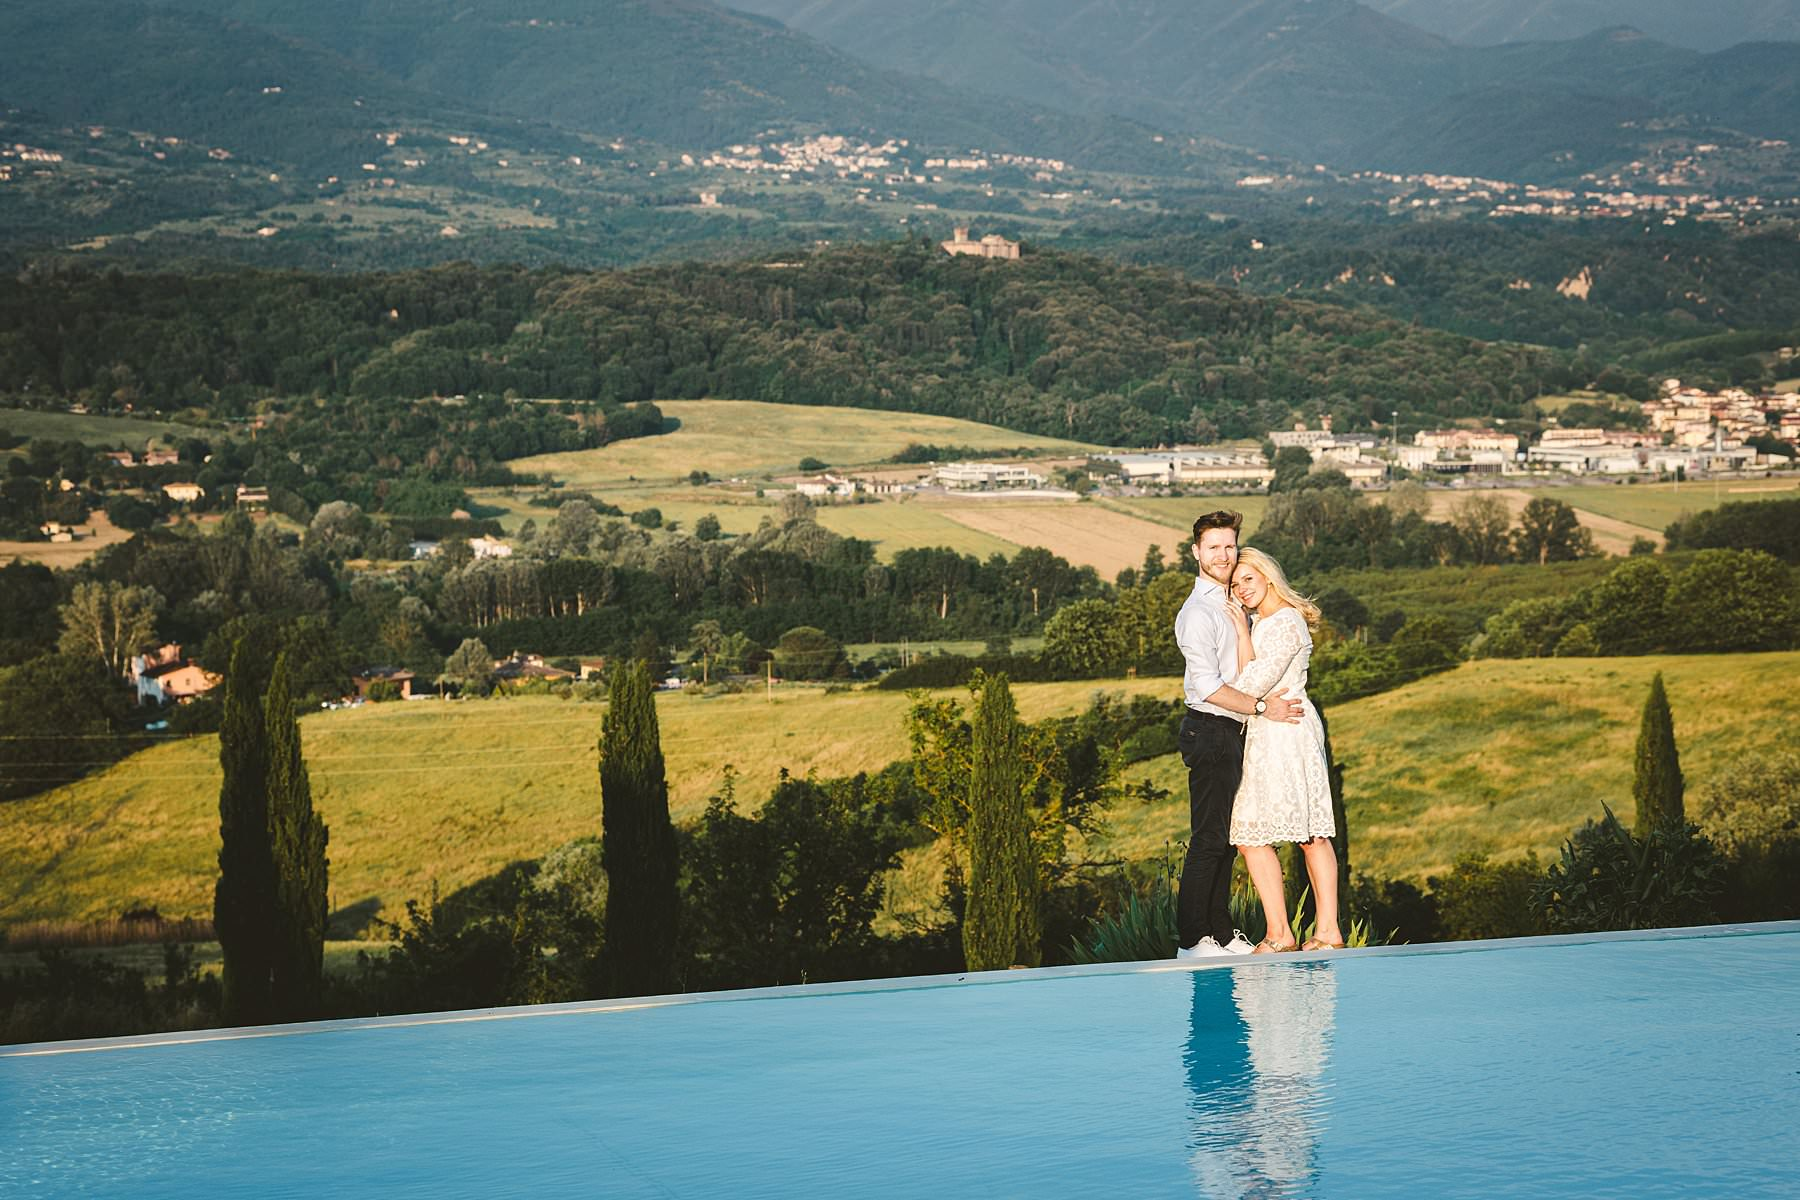 Incredible Tuscan countryside panoramic view at Poggio Tre Lune, the perfect location for surprise proposal engagement photo shoot